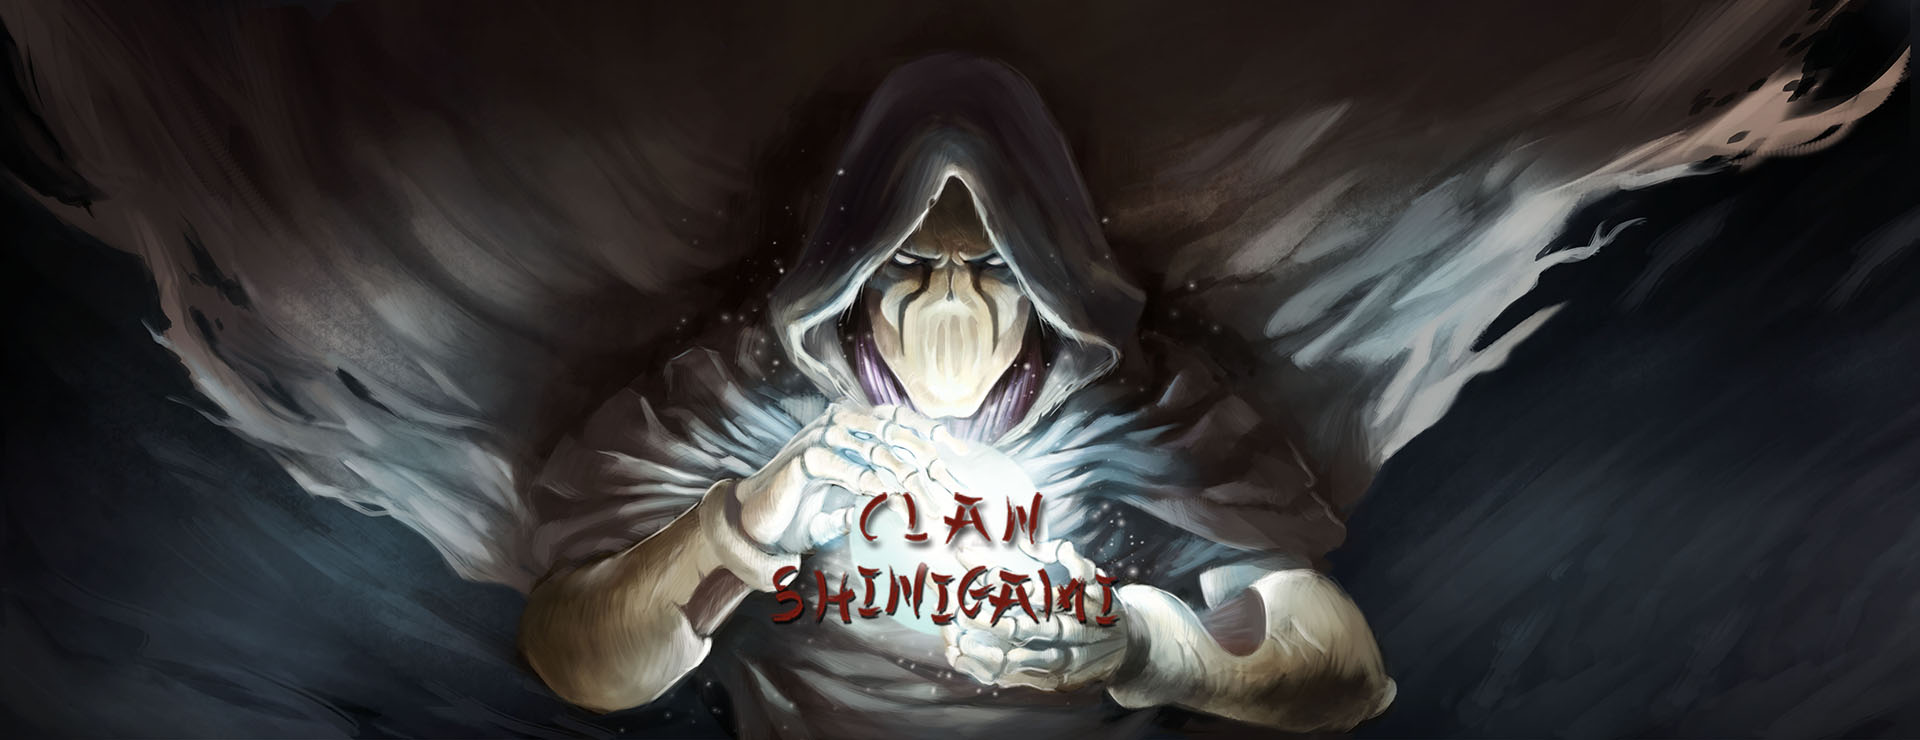 Clan Shinigami